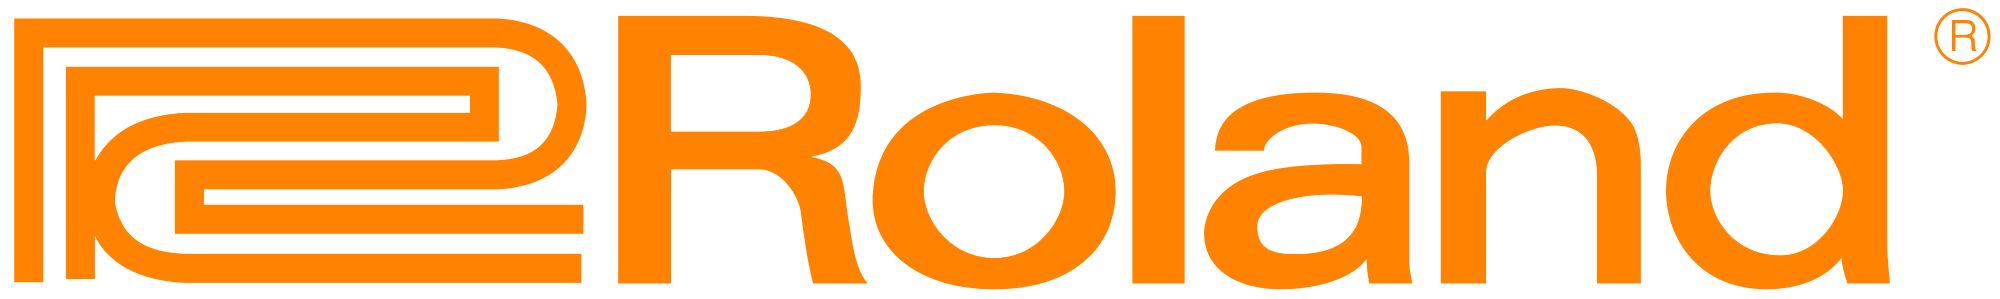 Roland logo.png